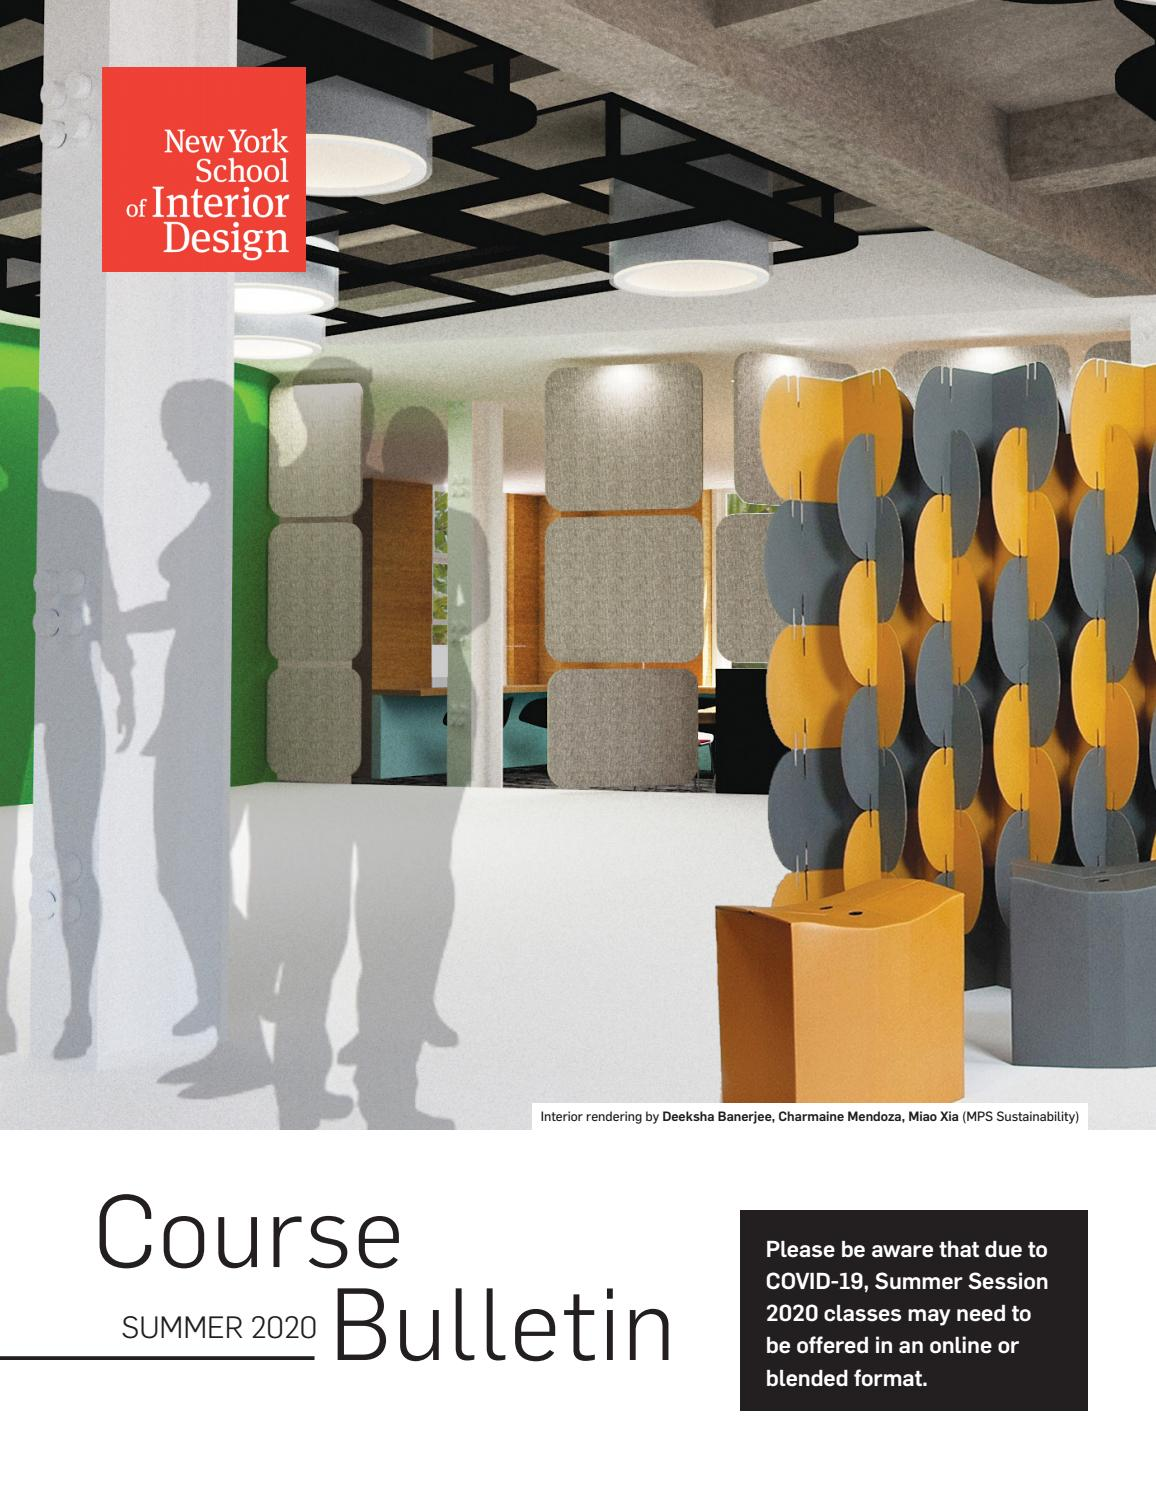 Summer 2020 Course Bulletin By New York School Of Interior Design Issuu